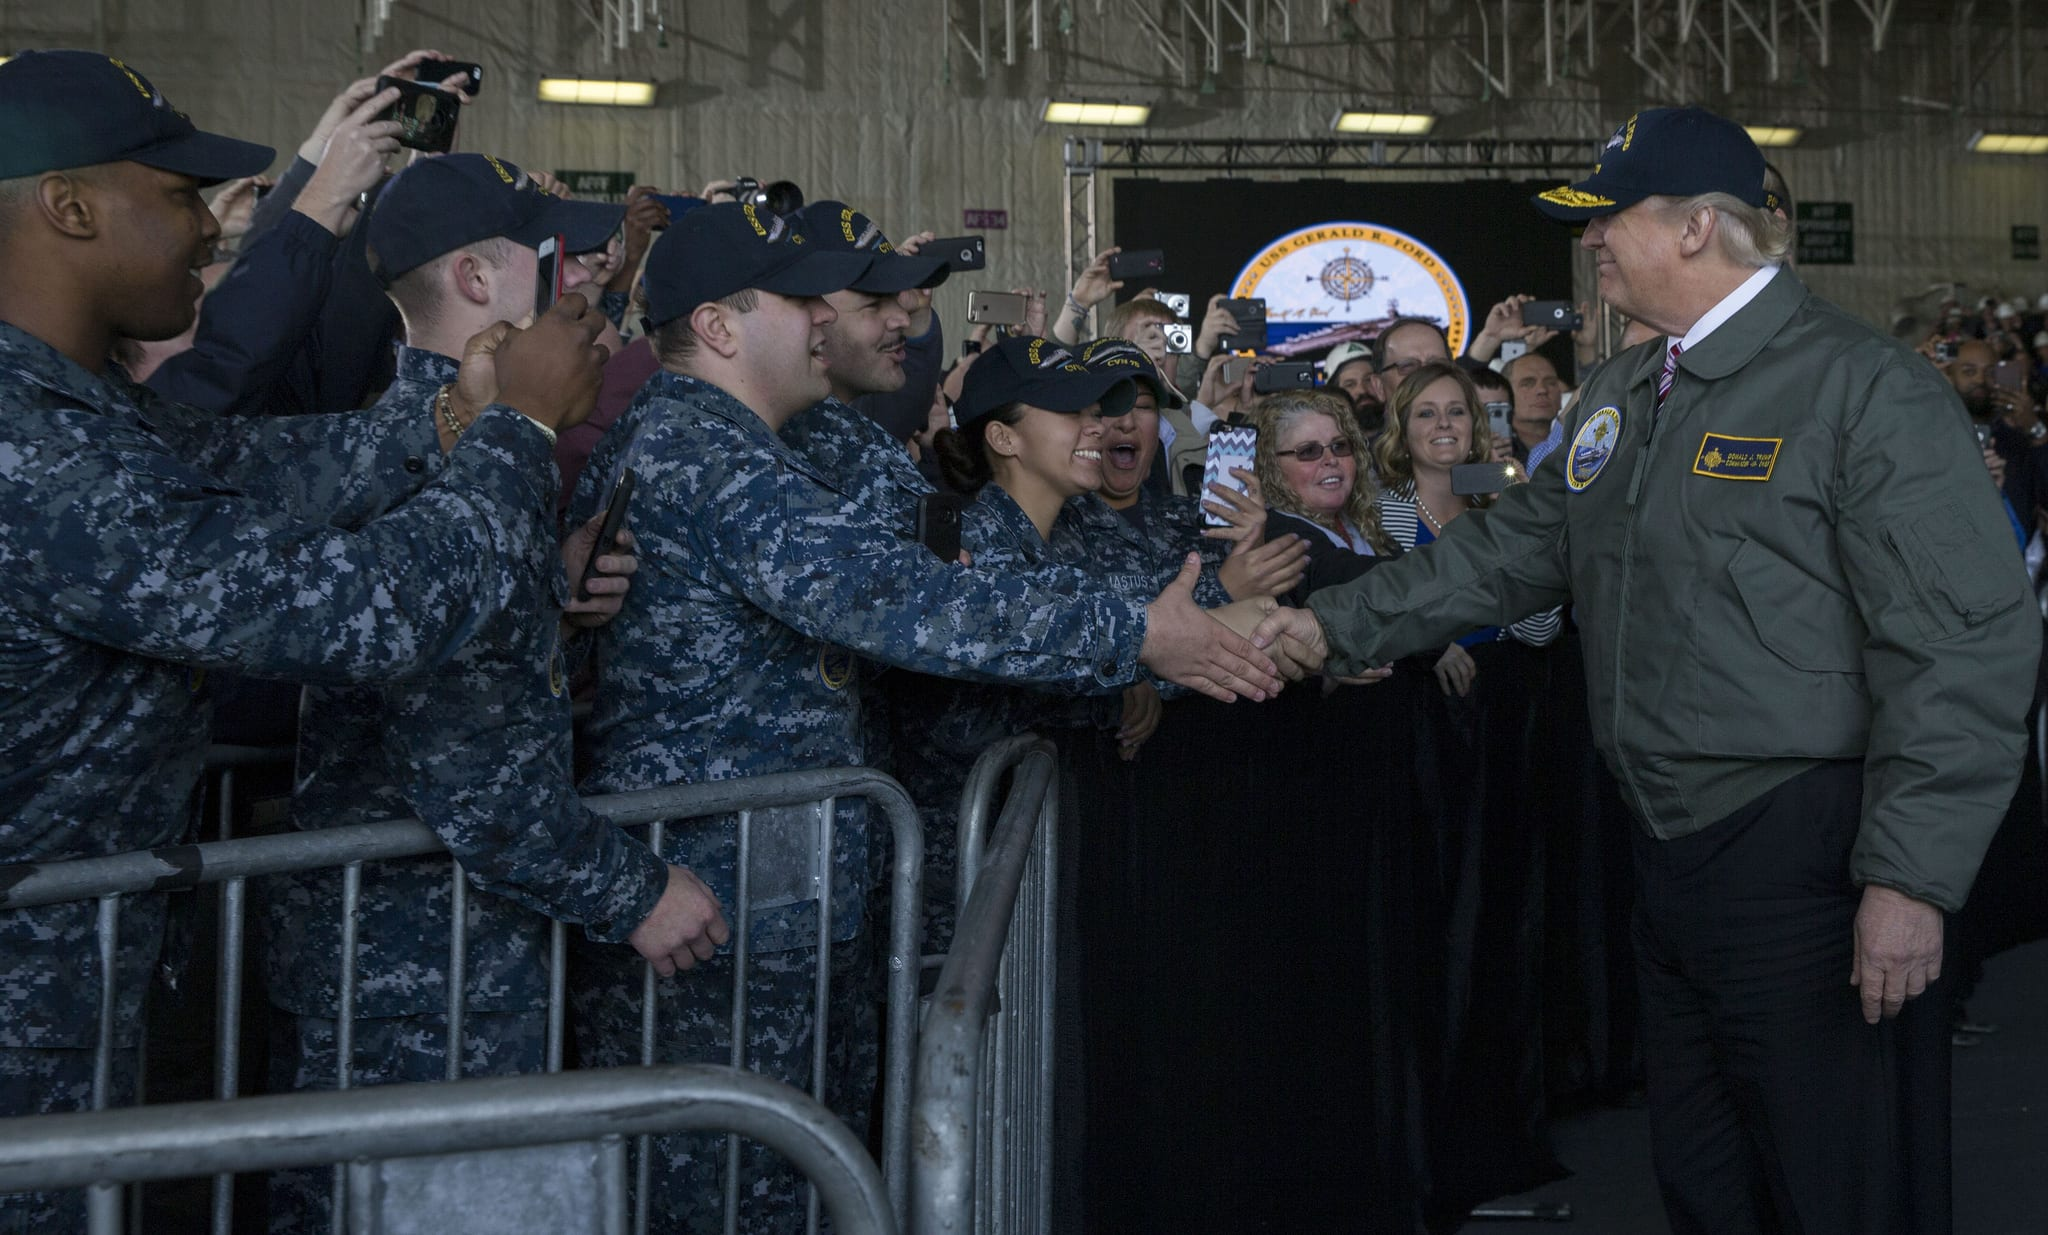 NEWPORT NEWS, Va. (March 2, 2017) President Donald J. Trump greets Sailors after entering the hangar bay aboard Pre-Commissioning Unit Gerald R. Ford (CVN 78). Trump visited March 2 to meet with Sailors and shipbuilders of the Navy's first-in-class aircraft carrier during an all-hands call inside the ship's hangar bay. (U.S. Navy photo by Mass Communication Specialist 3rd Class Cathrine Mae O. Campbell/Released)170302-N-ZE240-0292